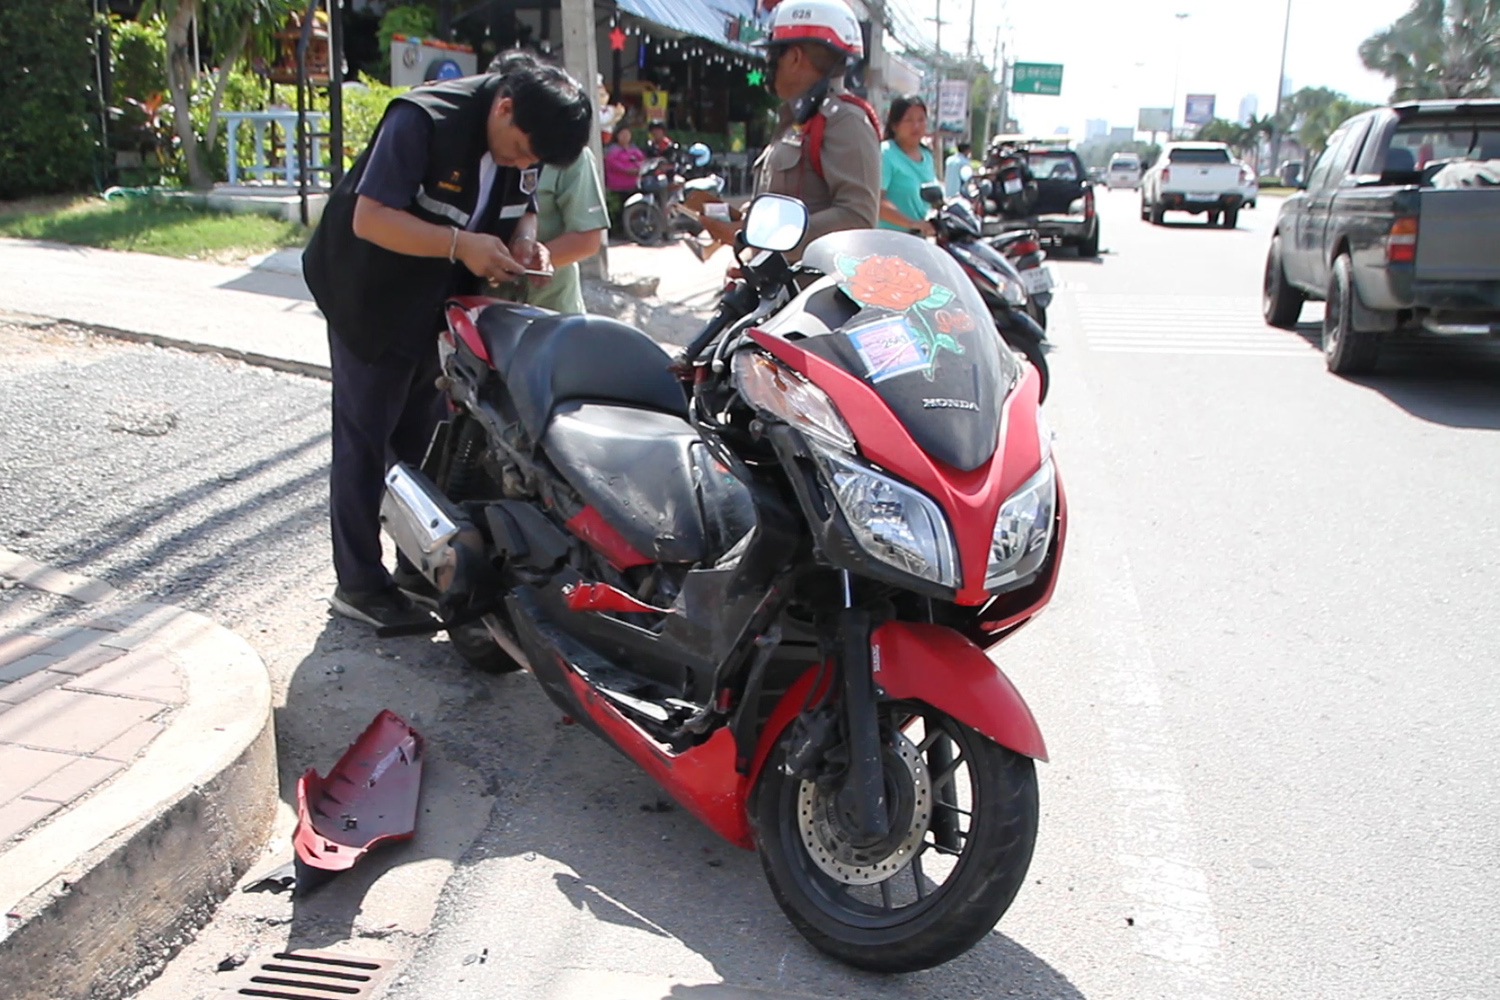 Police and rescue volunteers inspect a motorcycle that collided with a car in Pattaya on Wednesday, killing the bike's driver, Briton John Gresty. (Photo by Chaiyot Pupattanapong)